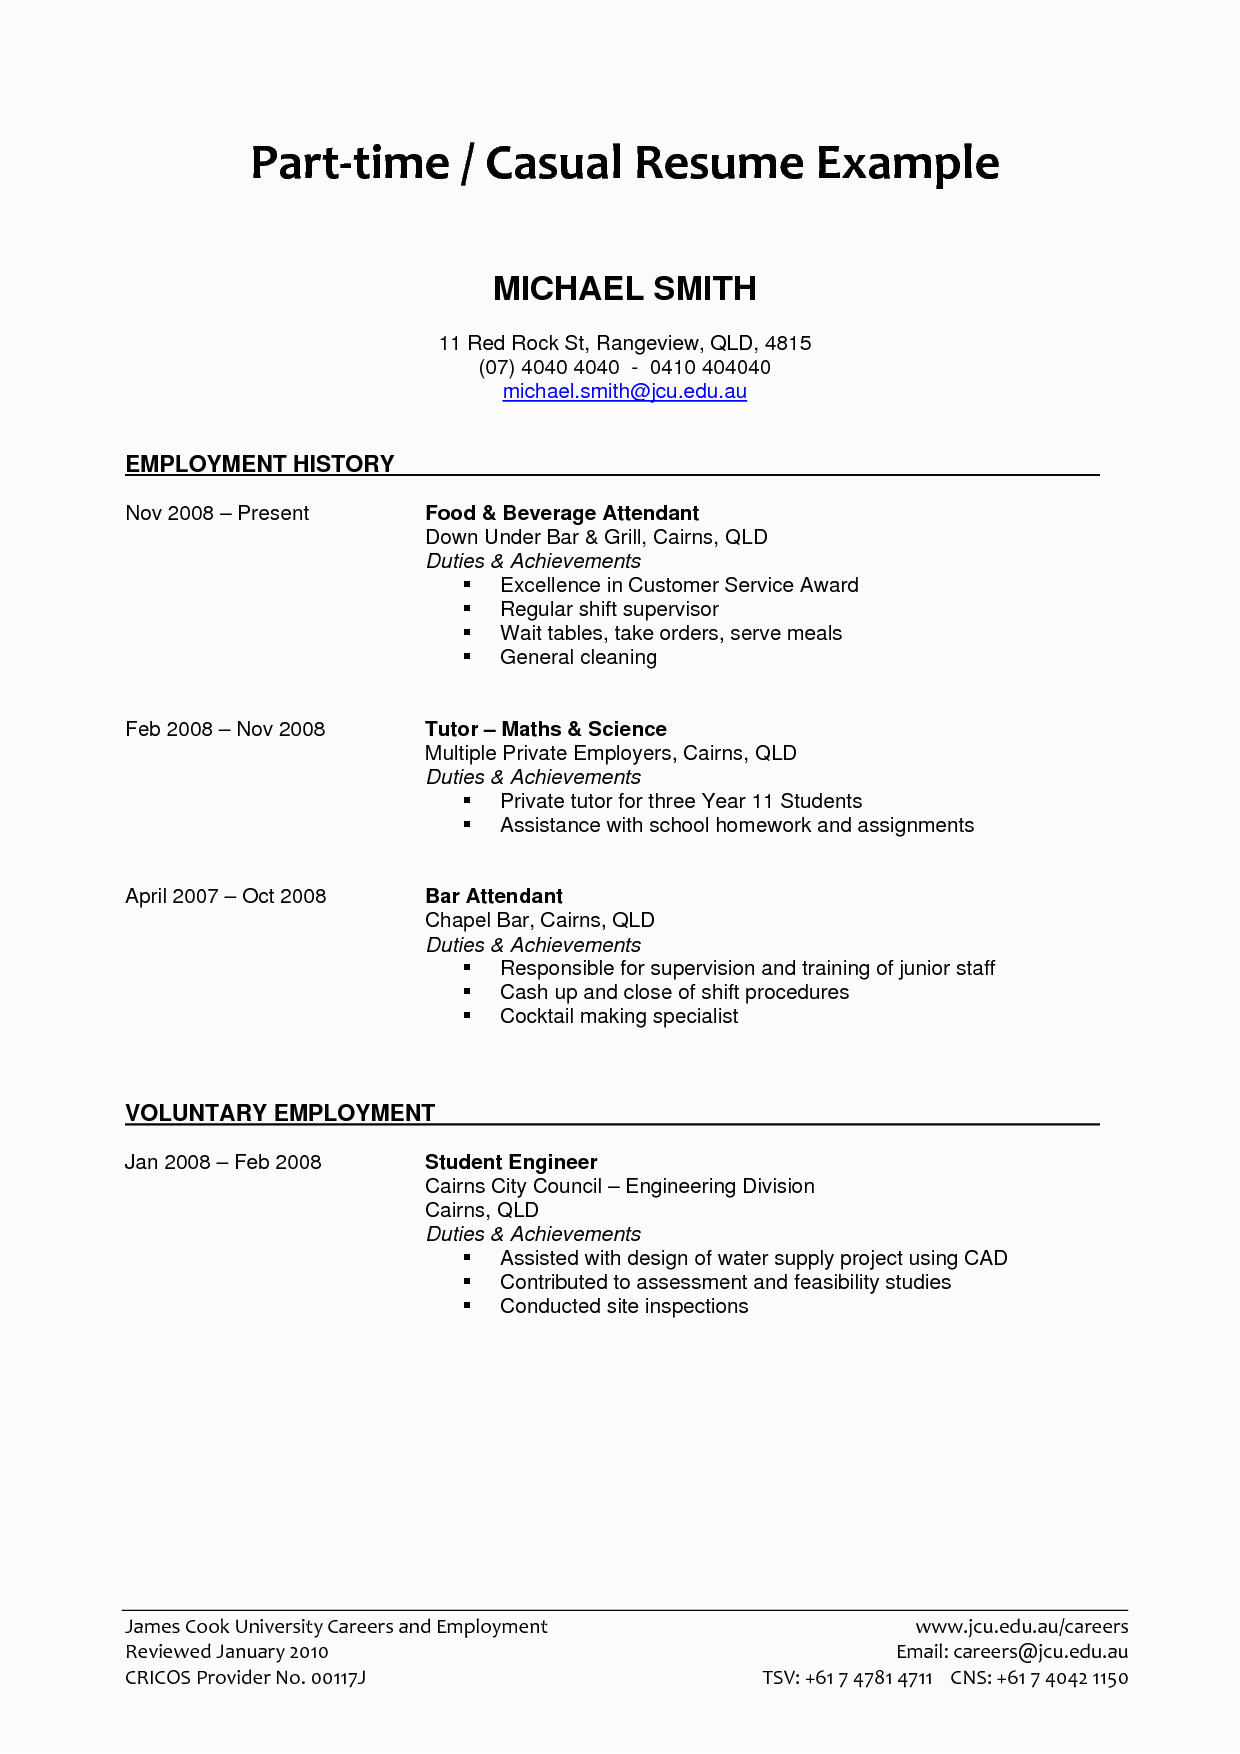 part time job resume examples 2017 for a student